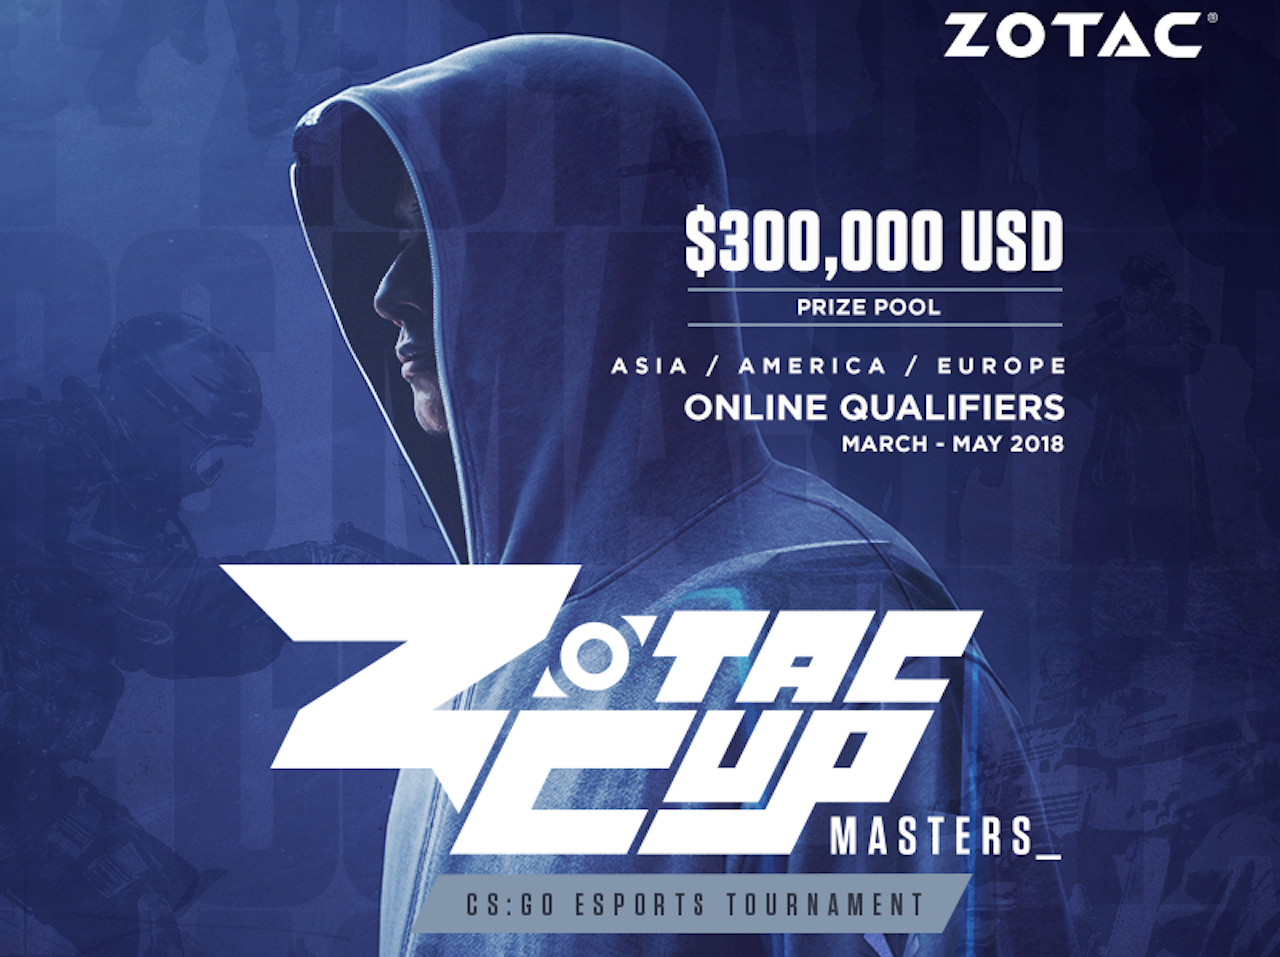 Photo of ZOTAC Announces ZOTAC Cup Masters with $300,000 Prize Pool